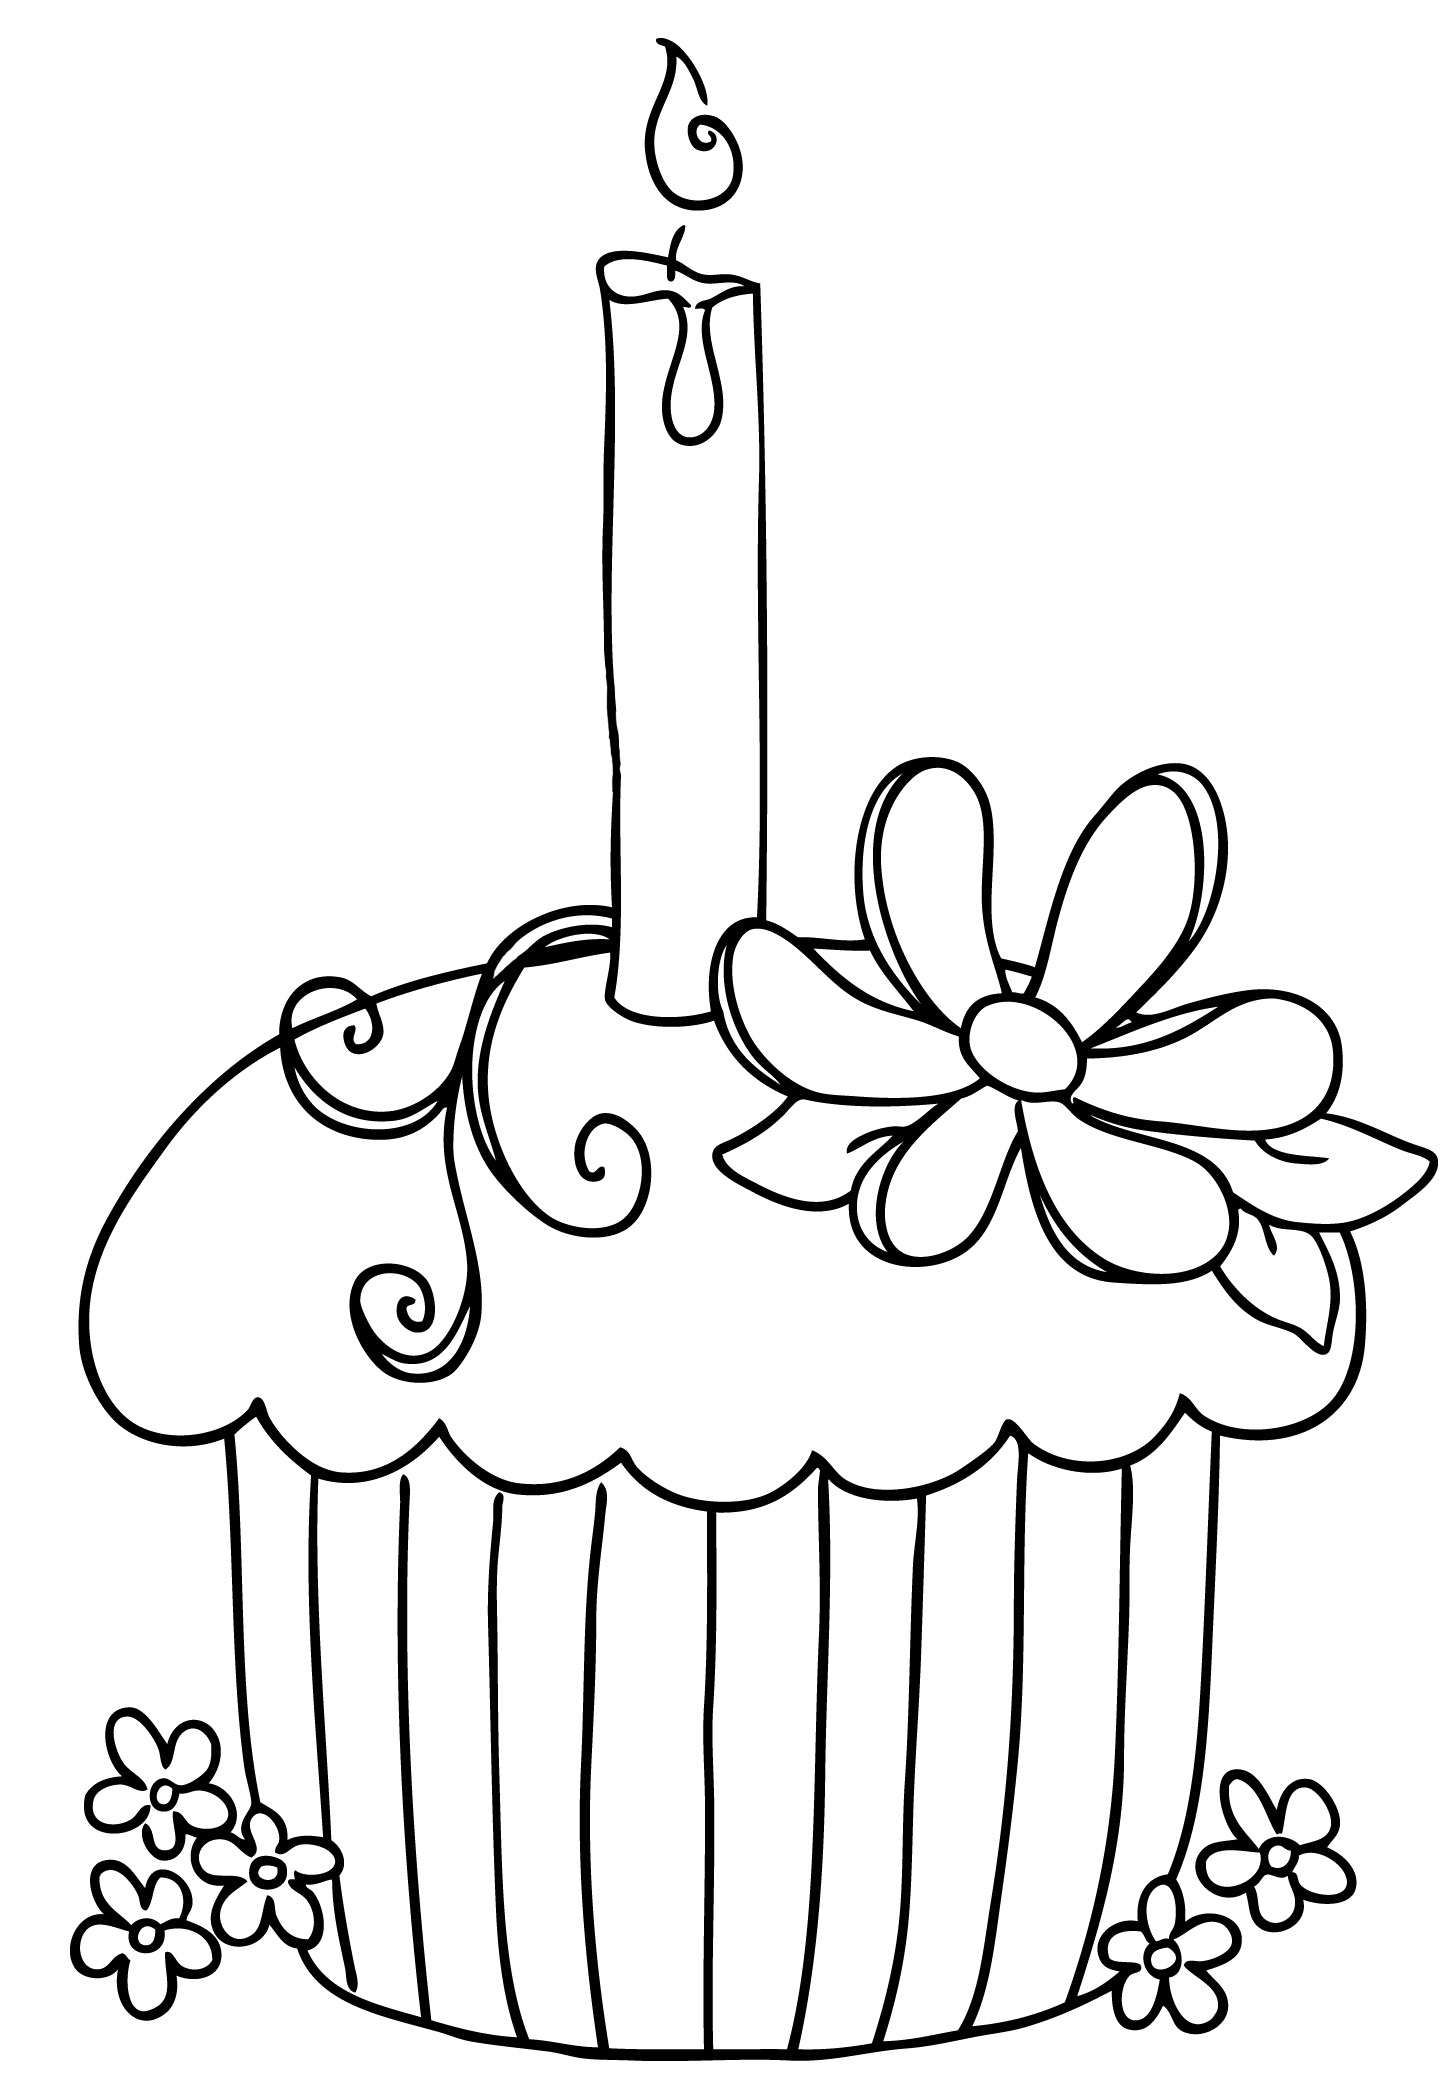 Birthday Candles Clipart Black And White Clipground